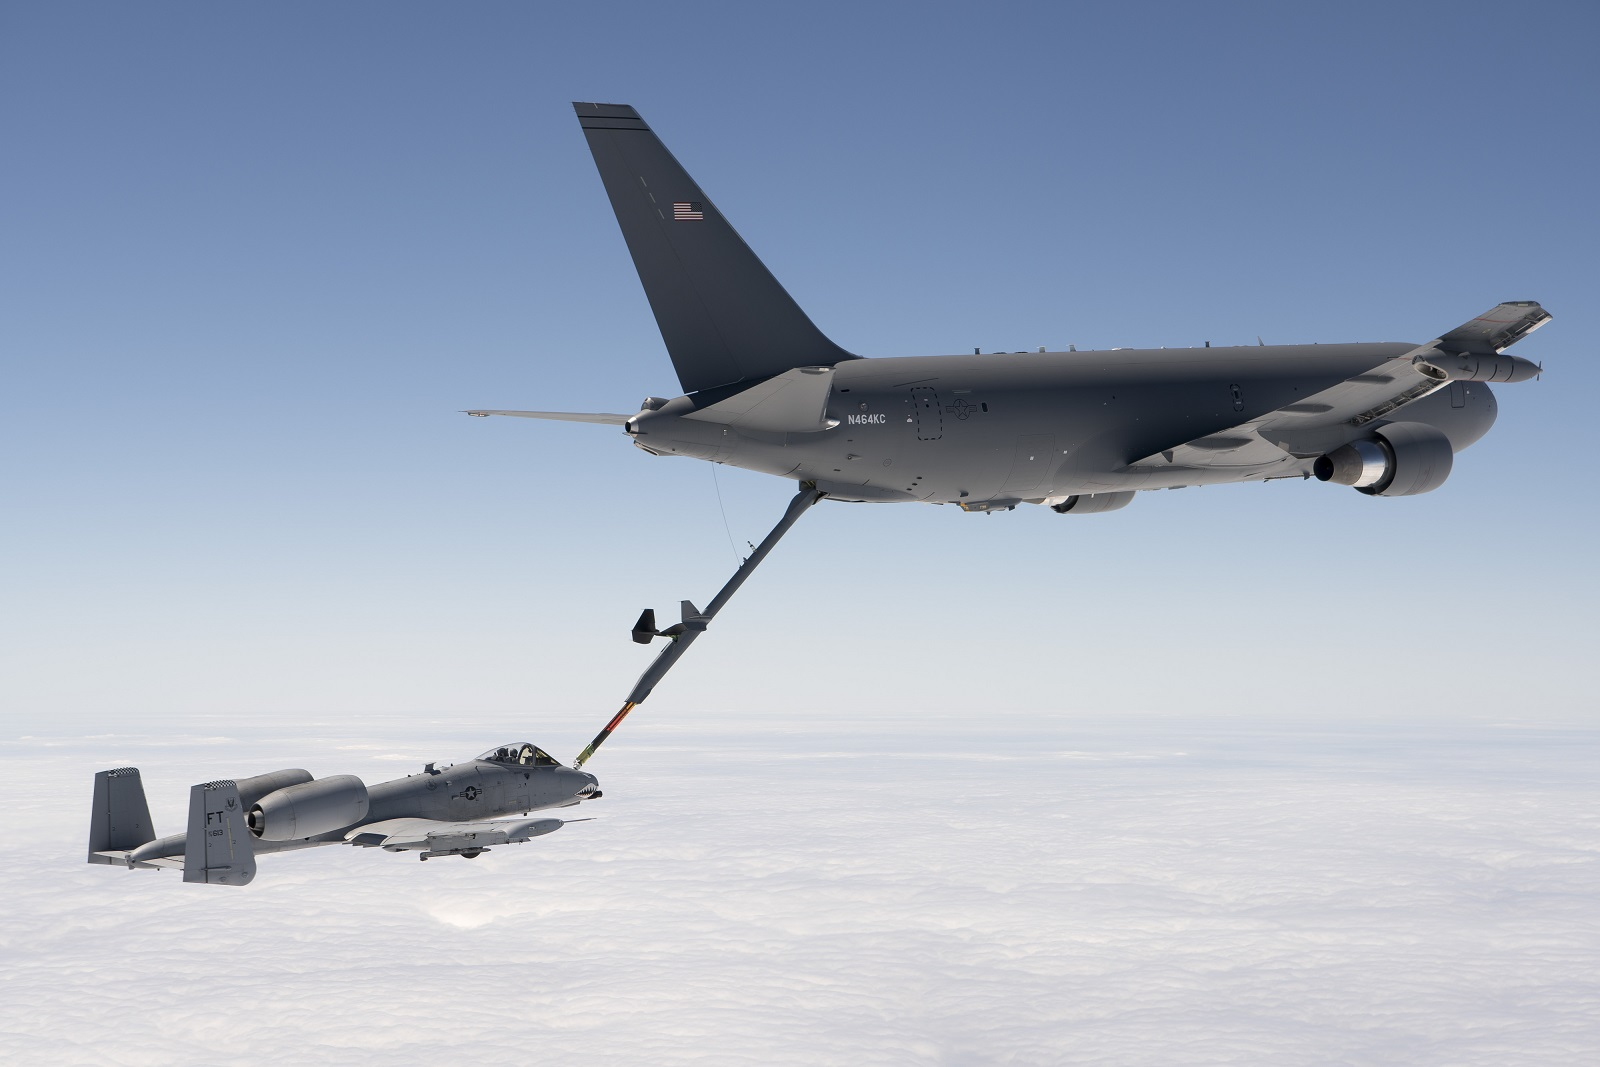 4-star: Delivery of the Air Force's new tanker is still on track